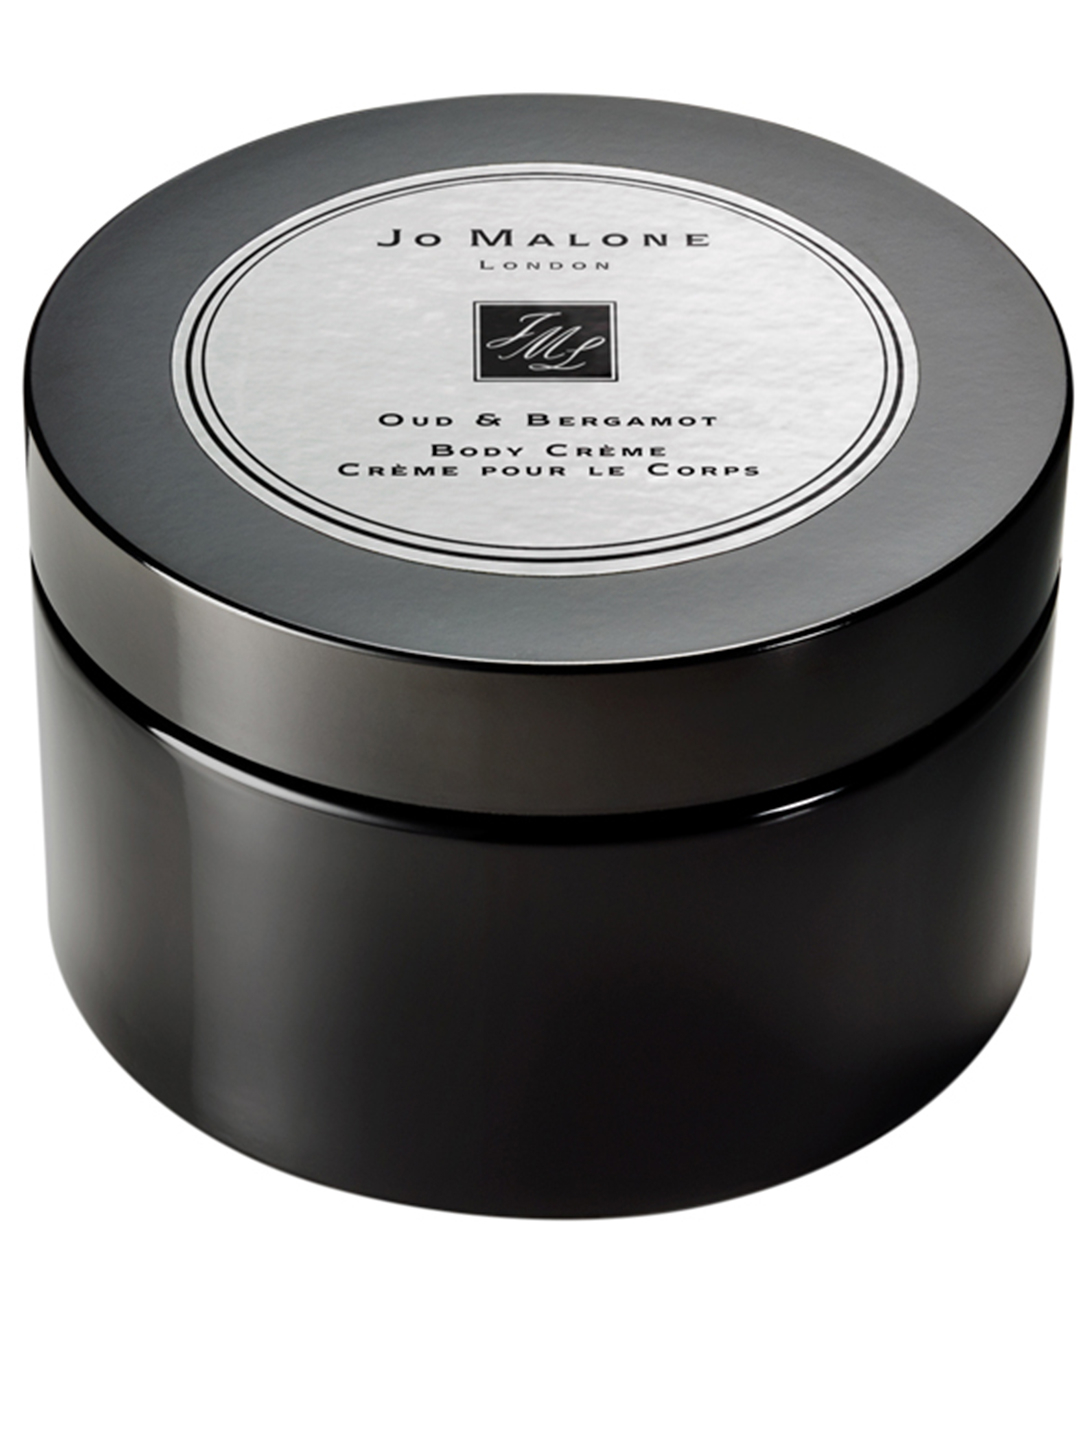 JO MALONE LONDON Oud & Bergamot Body Crème Beauty